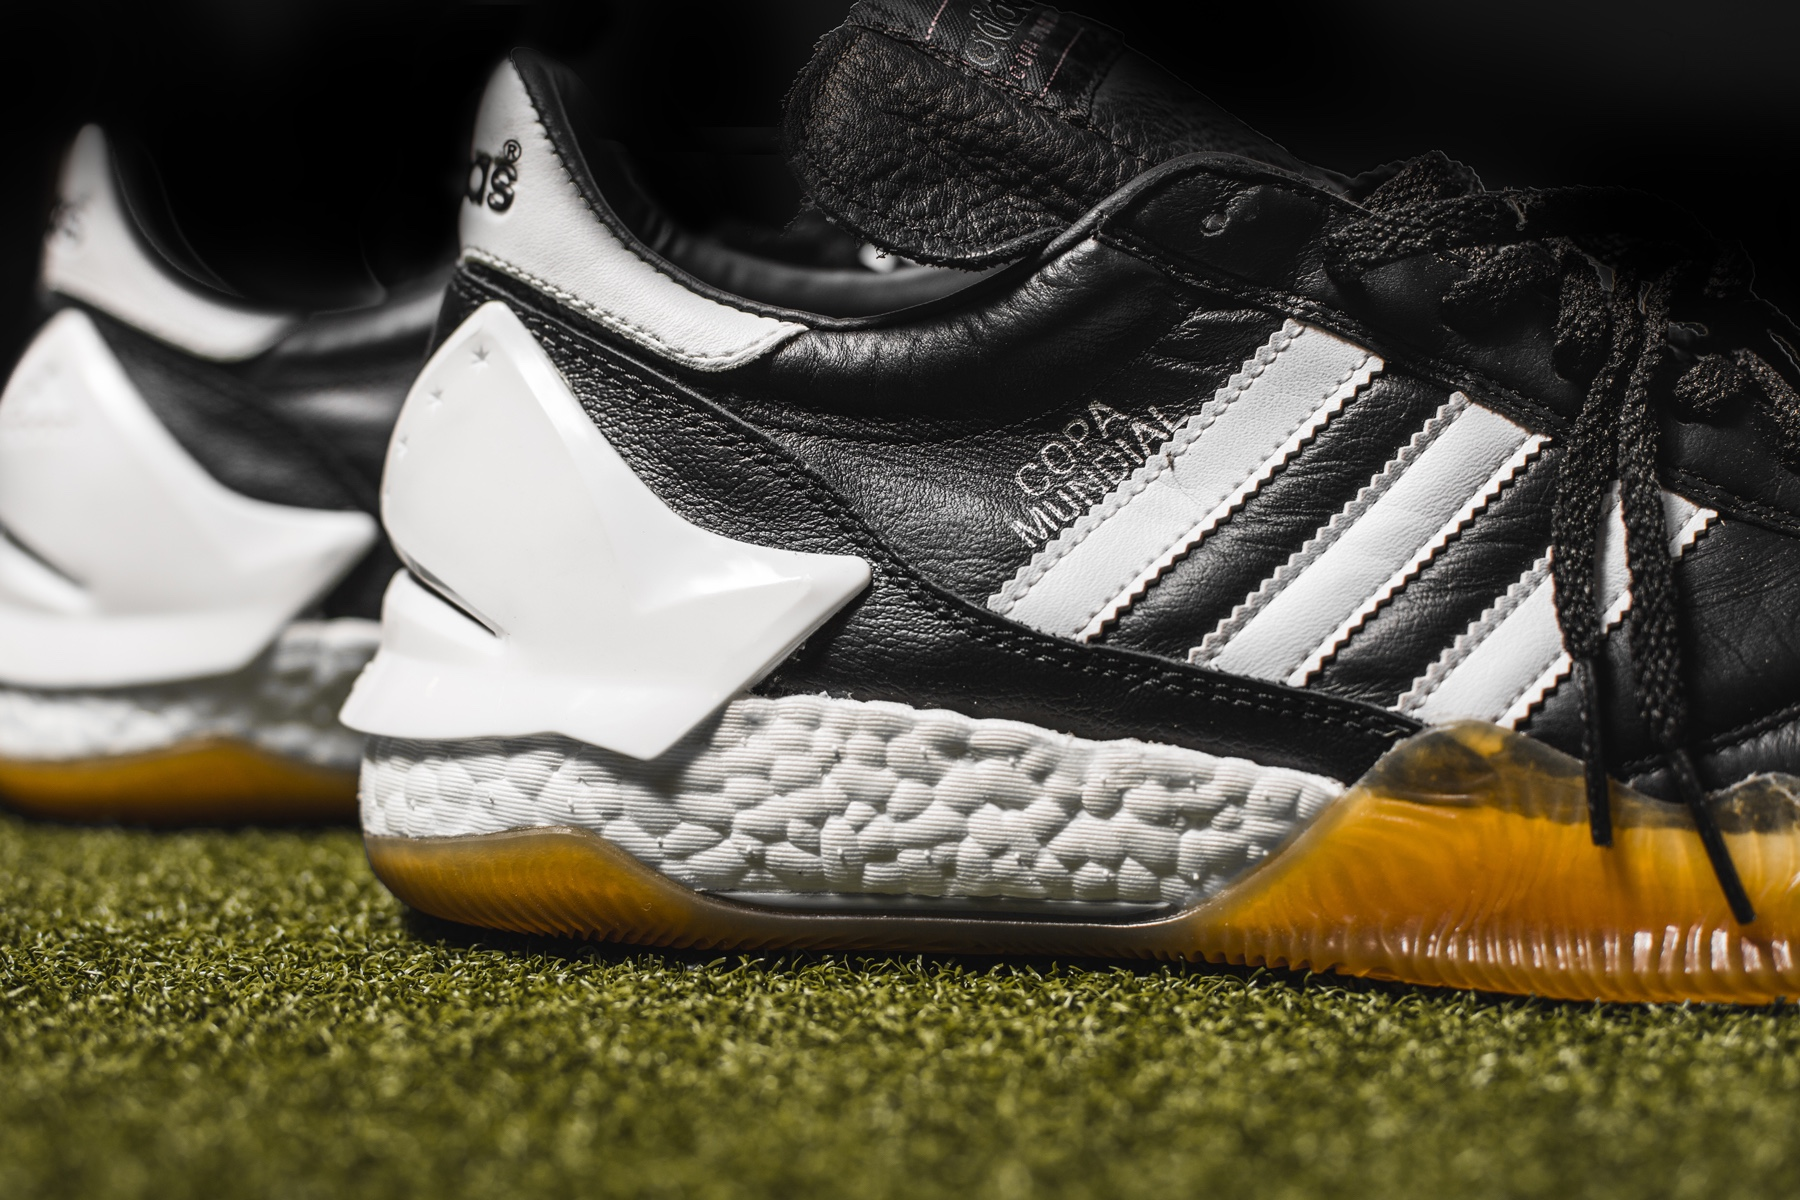 http---hypebeast.com-image-2017-04-adidas-copa-mundial-cleat-shoe-surgeon-3